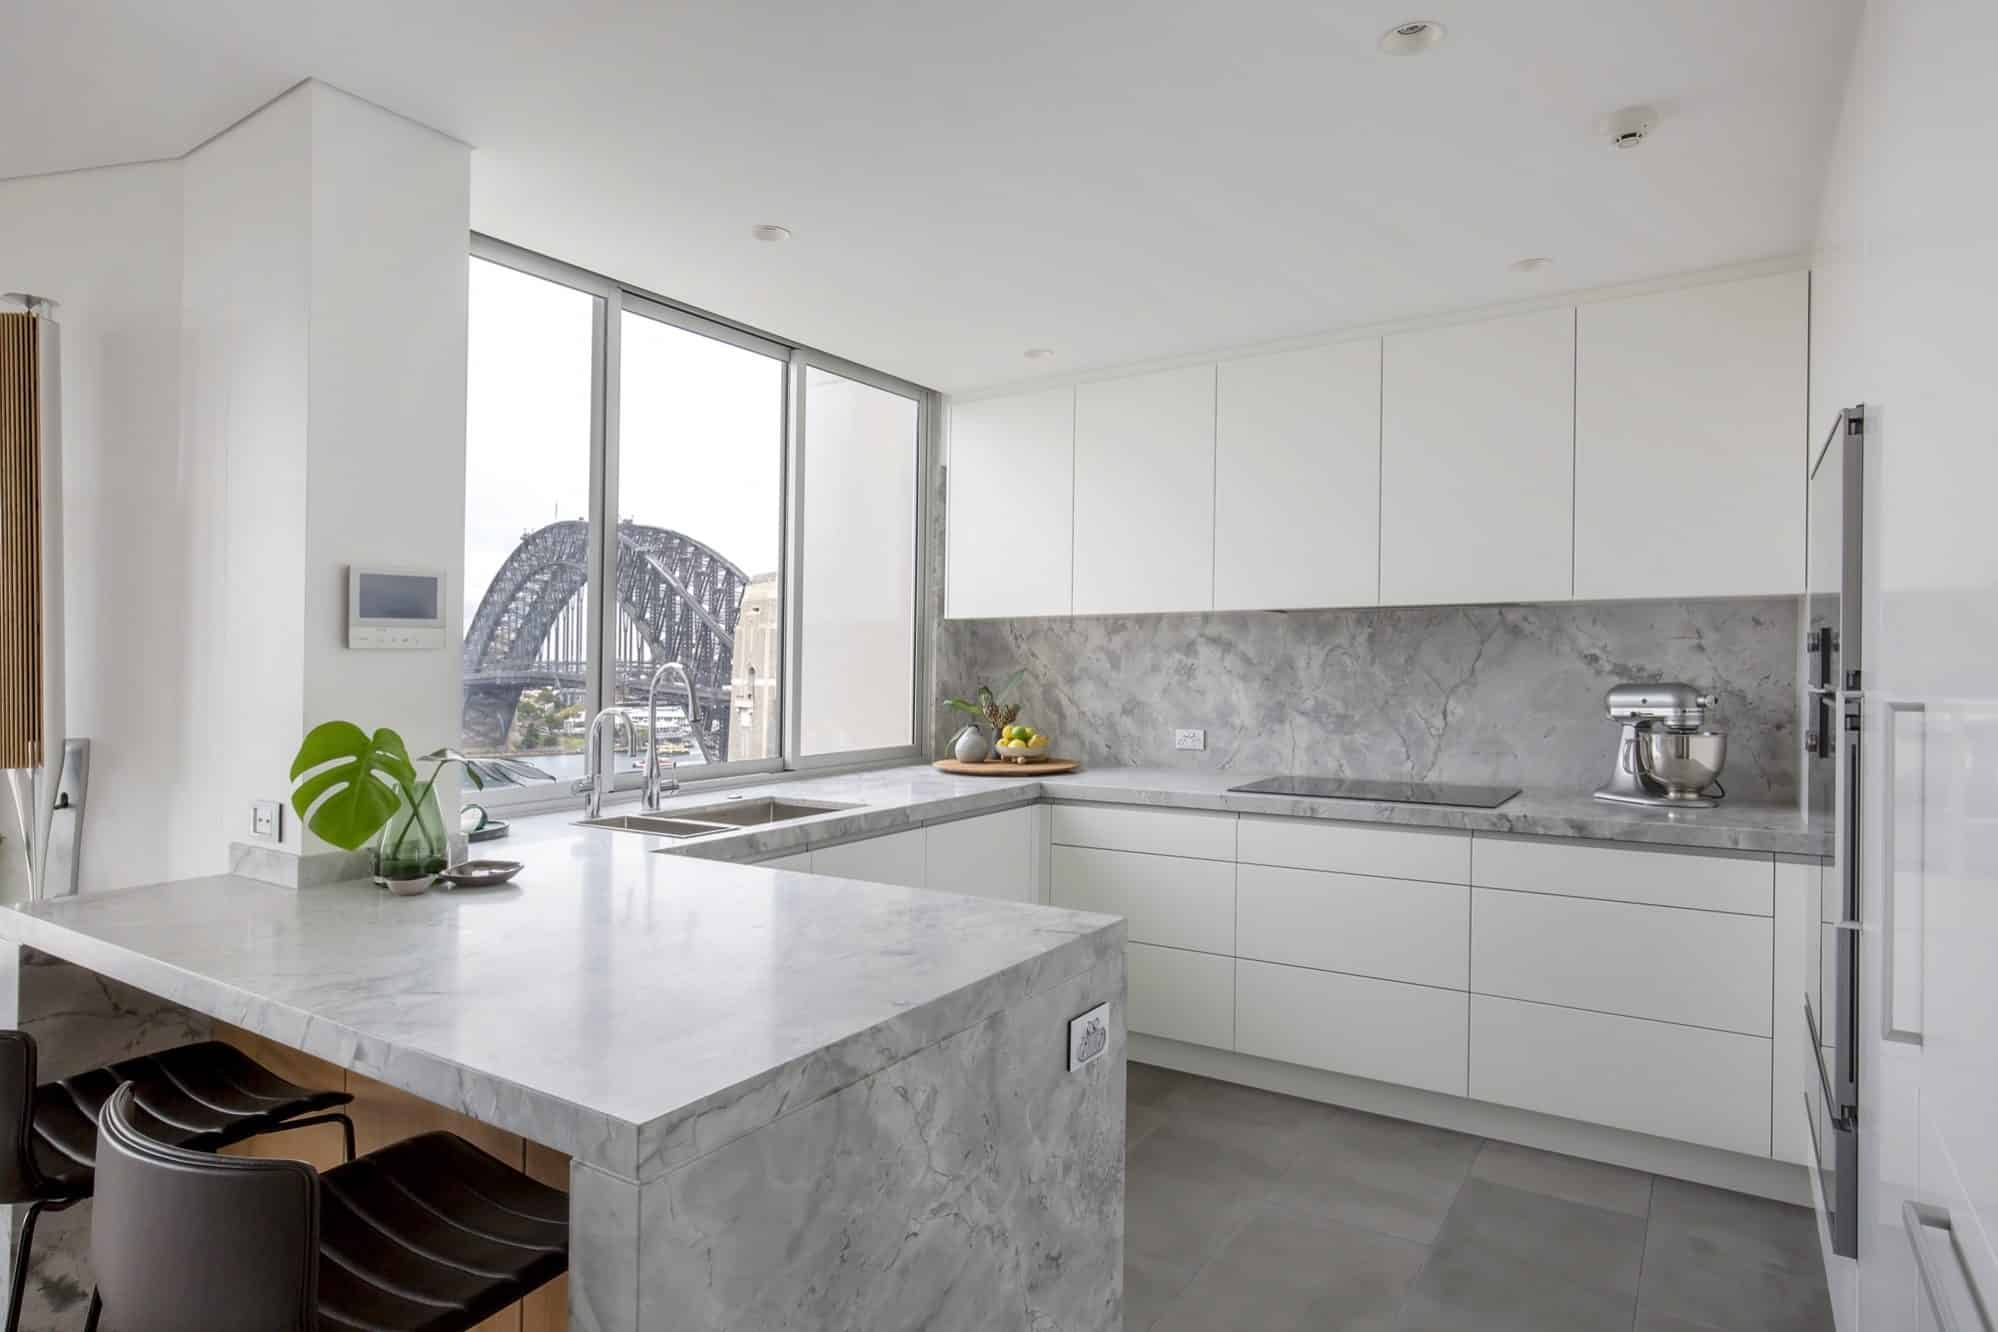 Kirribilli Apartment Kitchen After Image